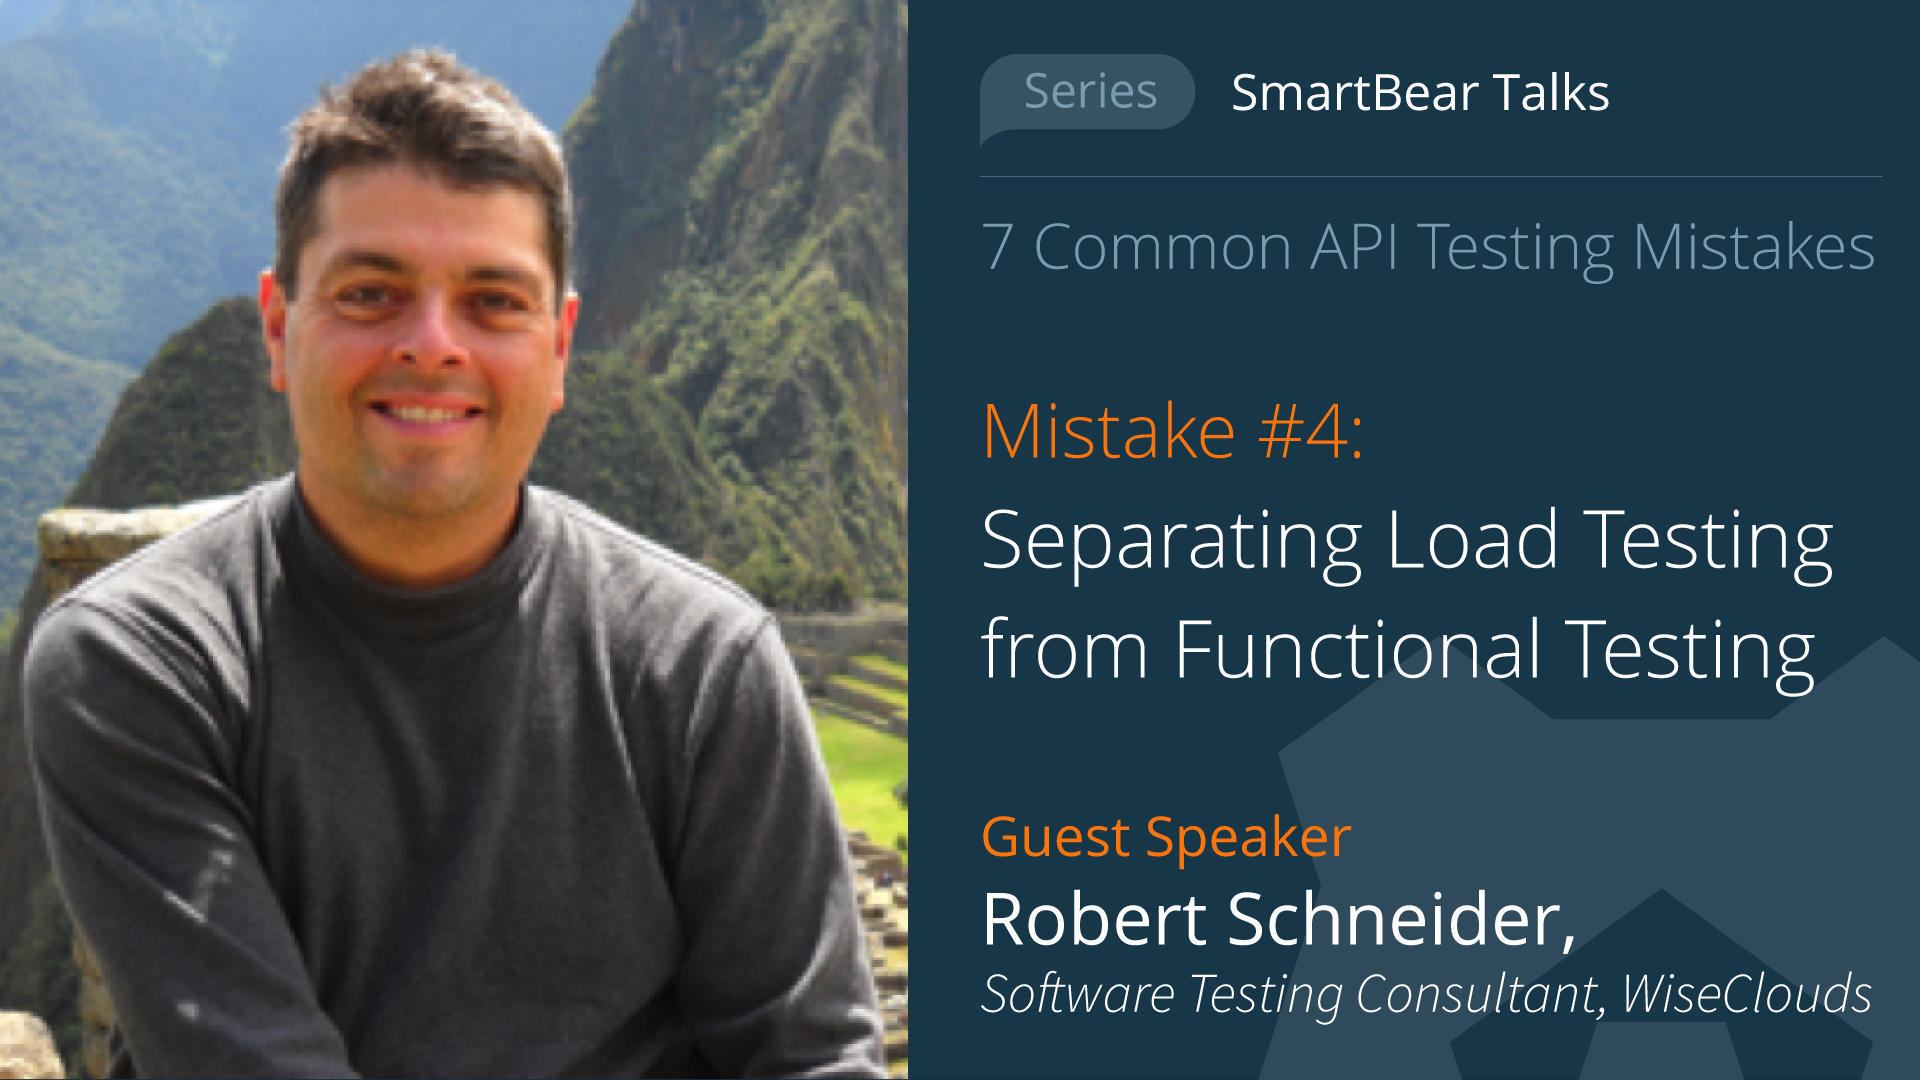 API Testing Mistake #4: Separating Load Testing from Functional Testing - Robert Schneider